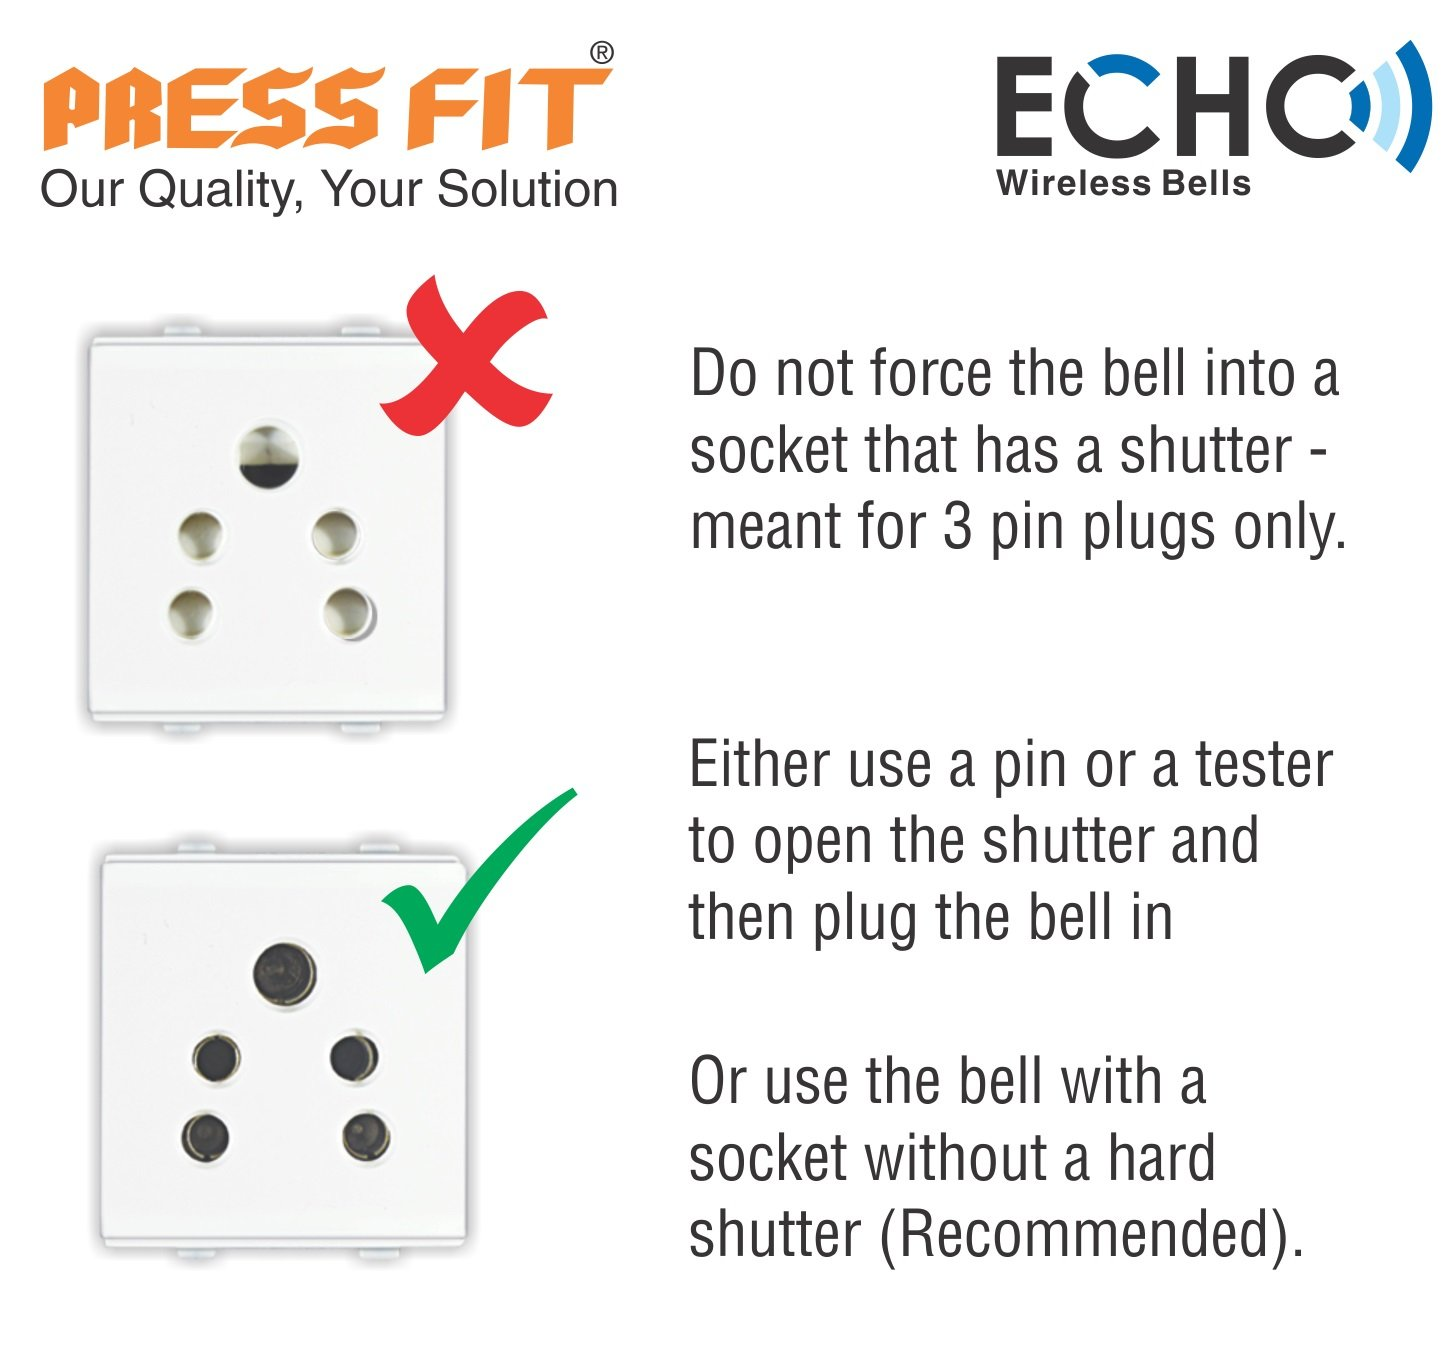 Press Fit Echo-V Auto-Learning Wireless Bell (Plug-in) (Bright Blue)